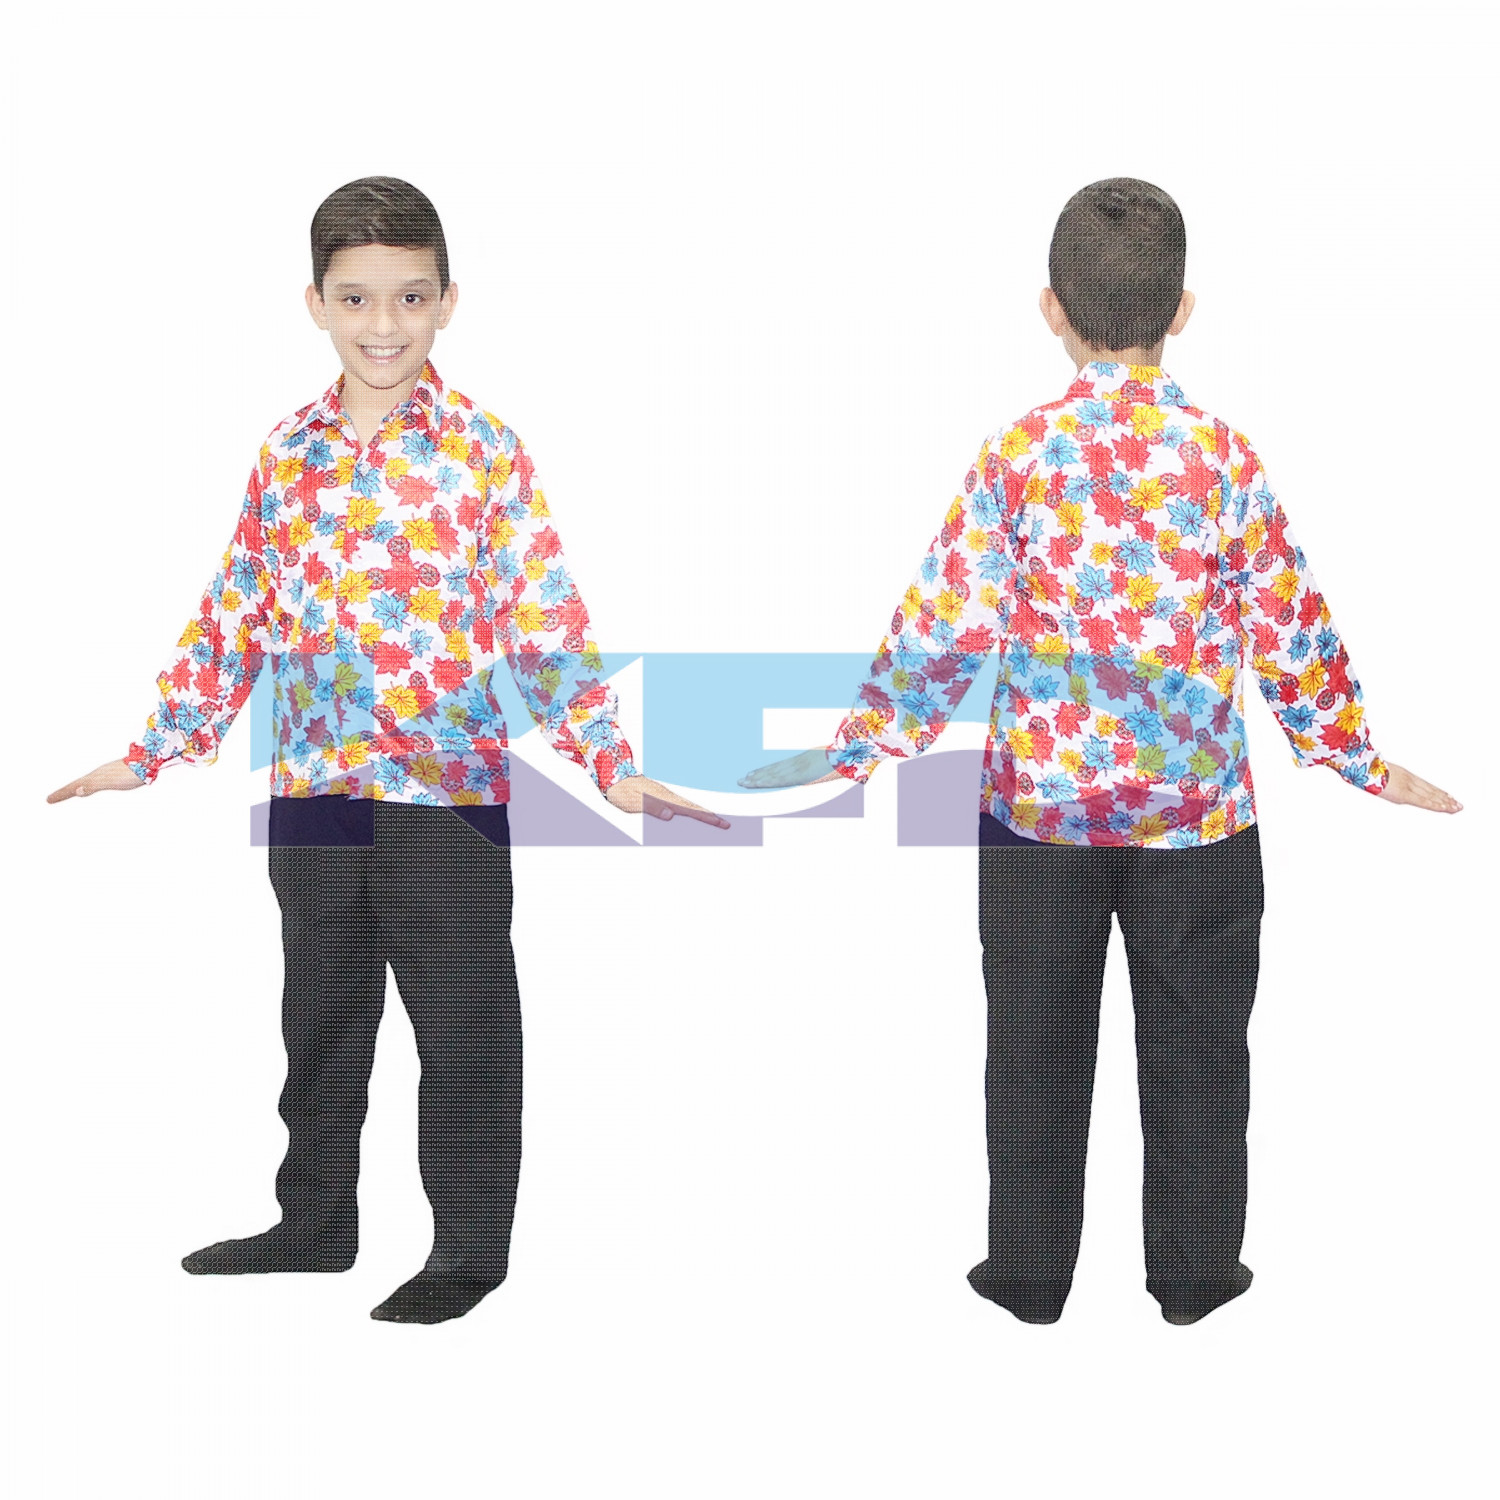 Flower Print Shirt fancy dress for kids,Western Costume for School Annual function/Theme Party/Competition/Stage Shows/Birthday Party Dress laten dance/salsa dance